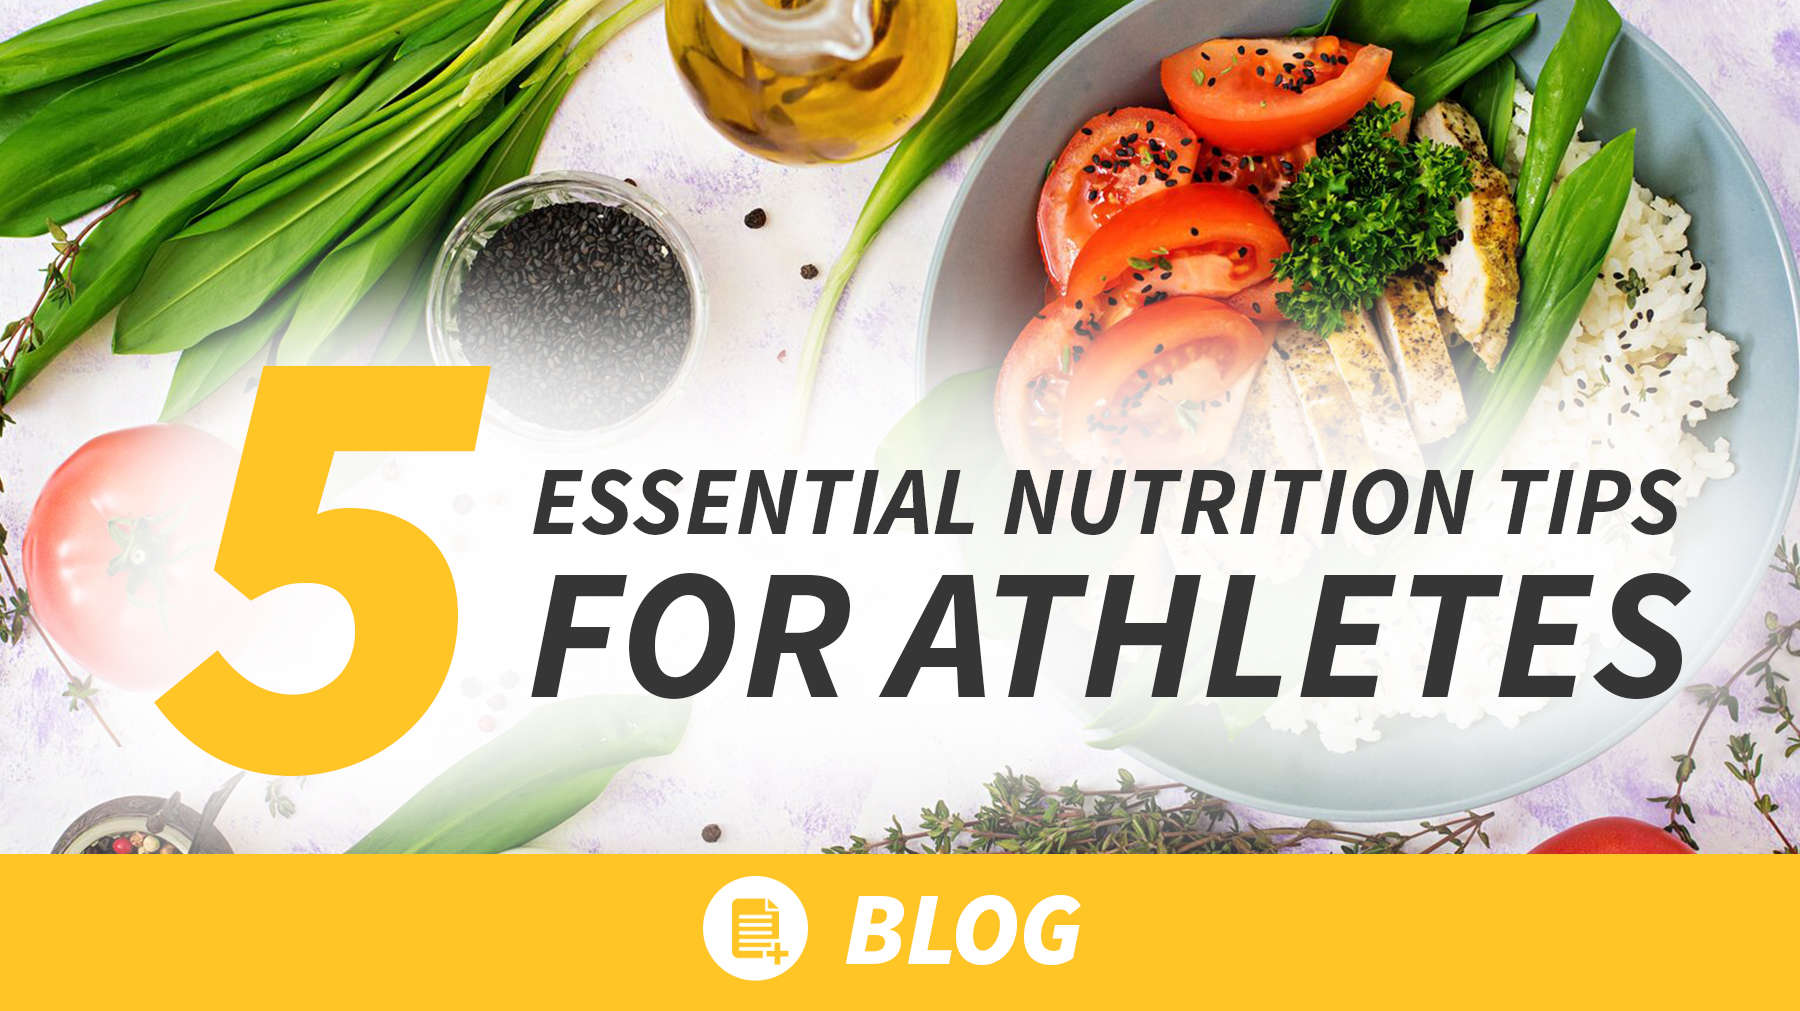 5 Essential Nutrition Tips For Athletes